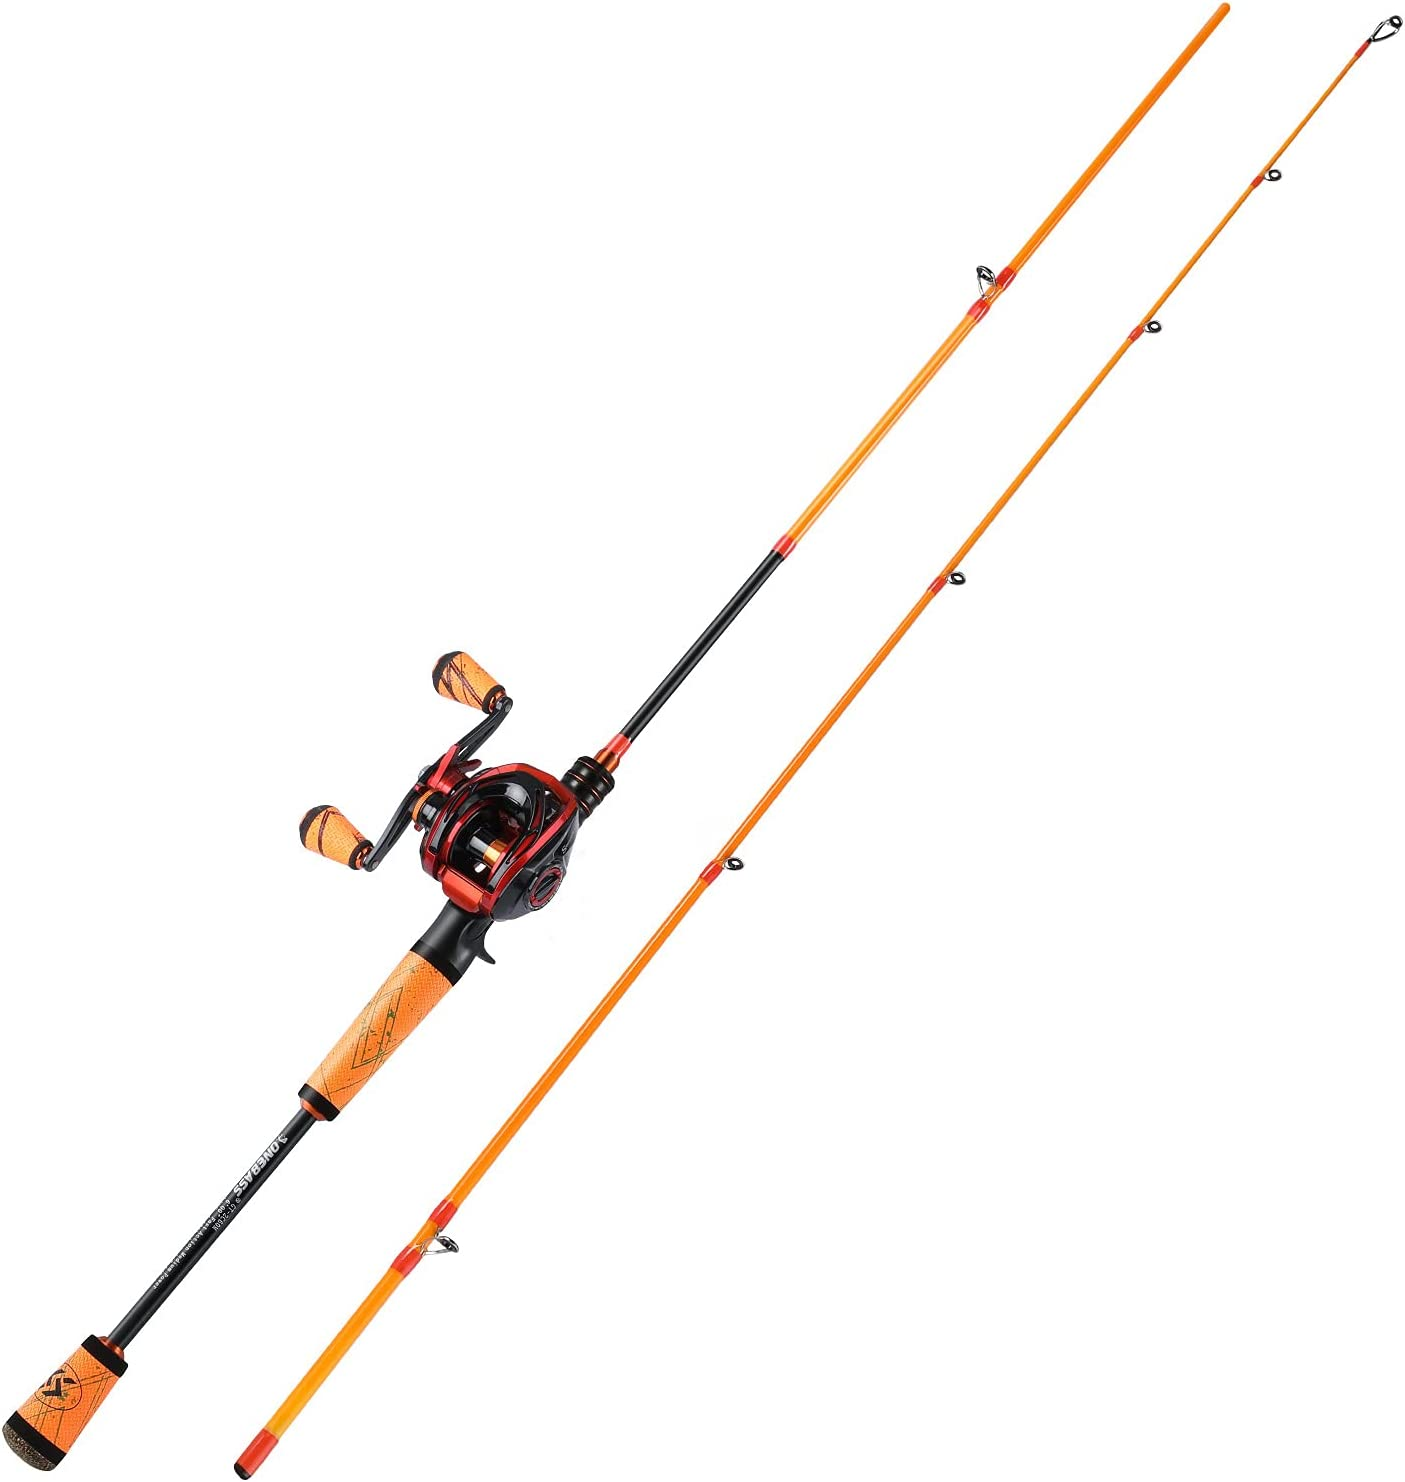 One Bass Fishing Rod and Reel Baitcasting Fast Super beauty product restock quality top! Combo Com Medium Soldering